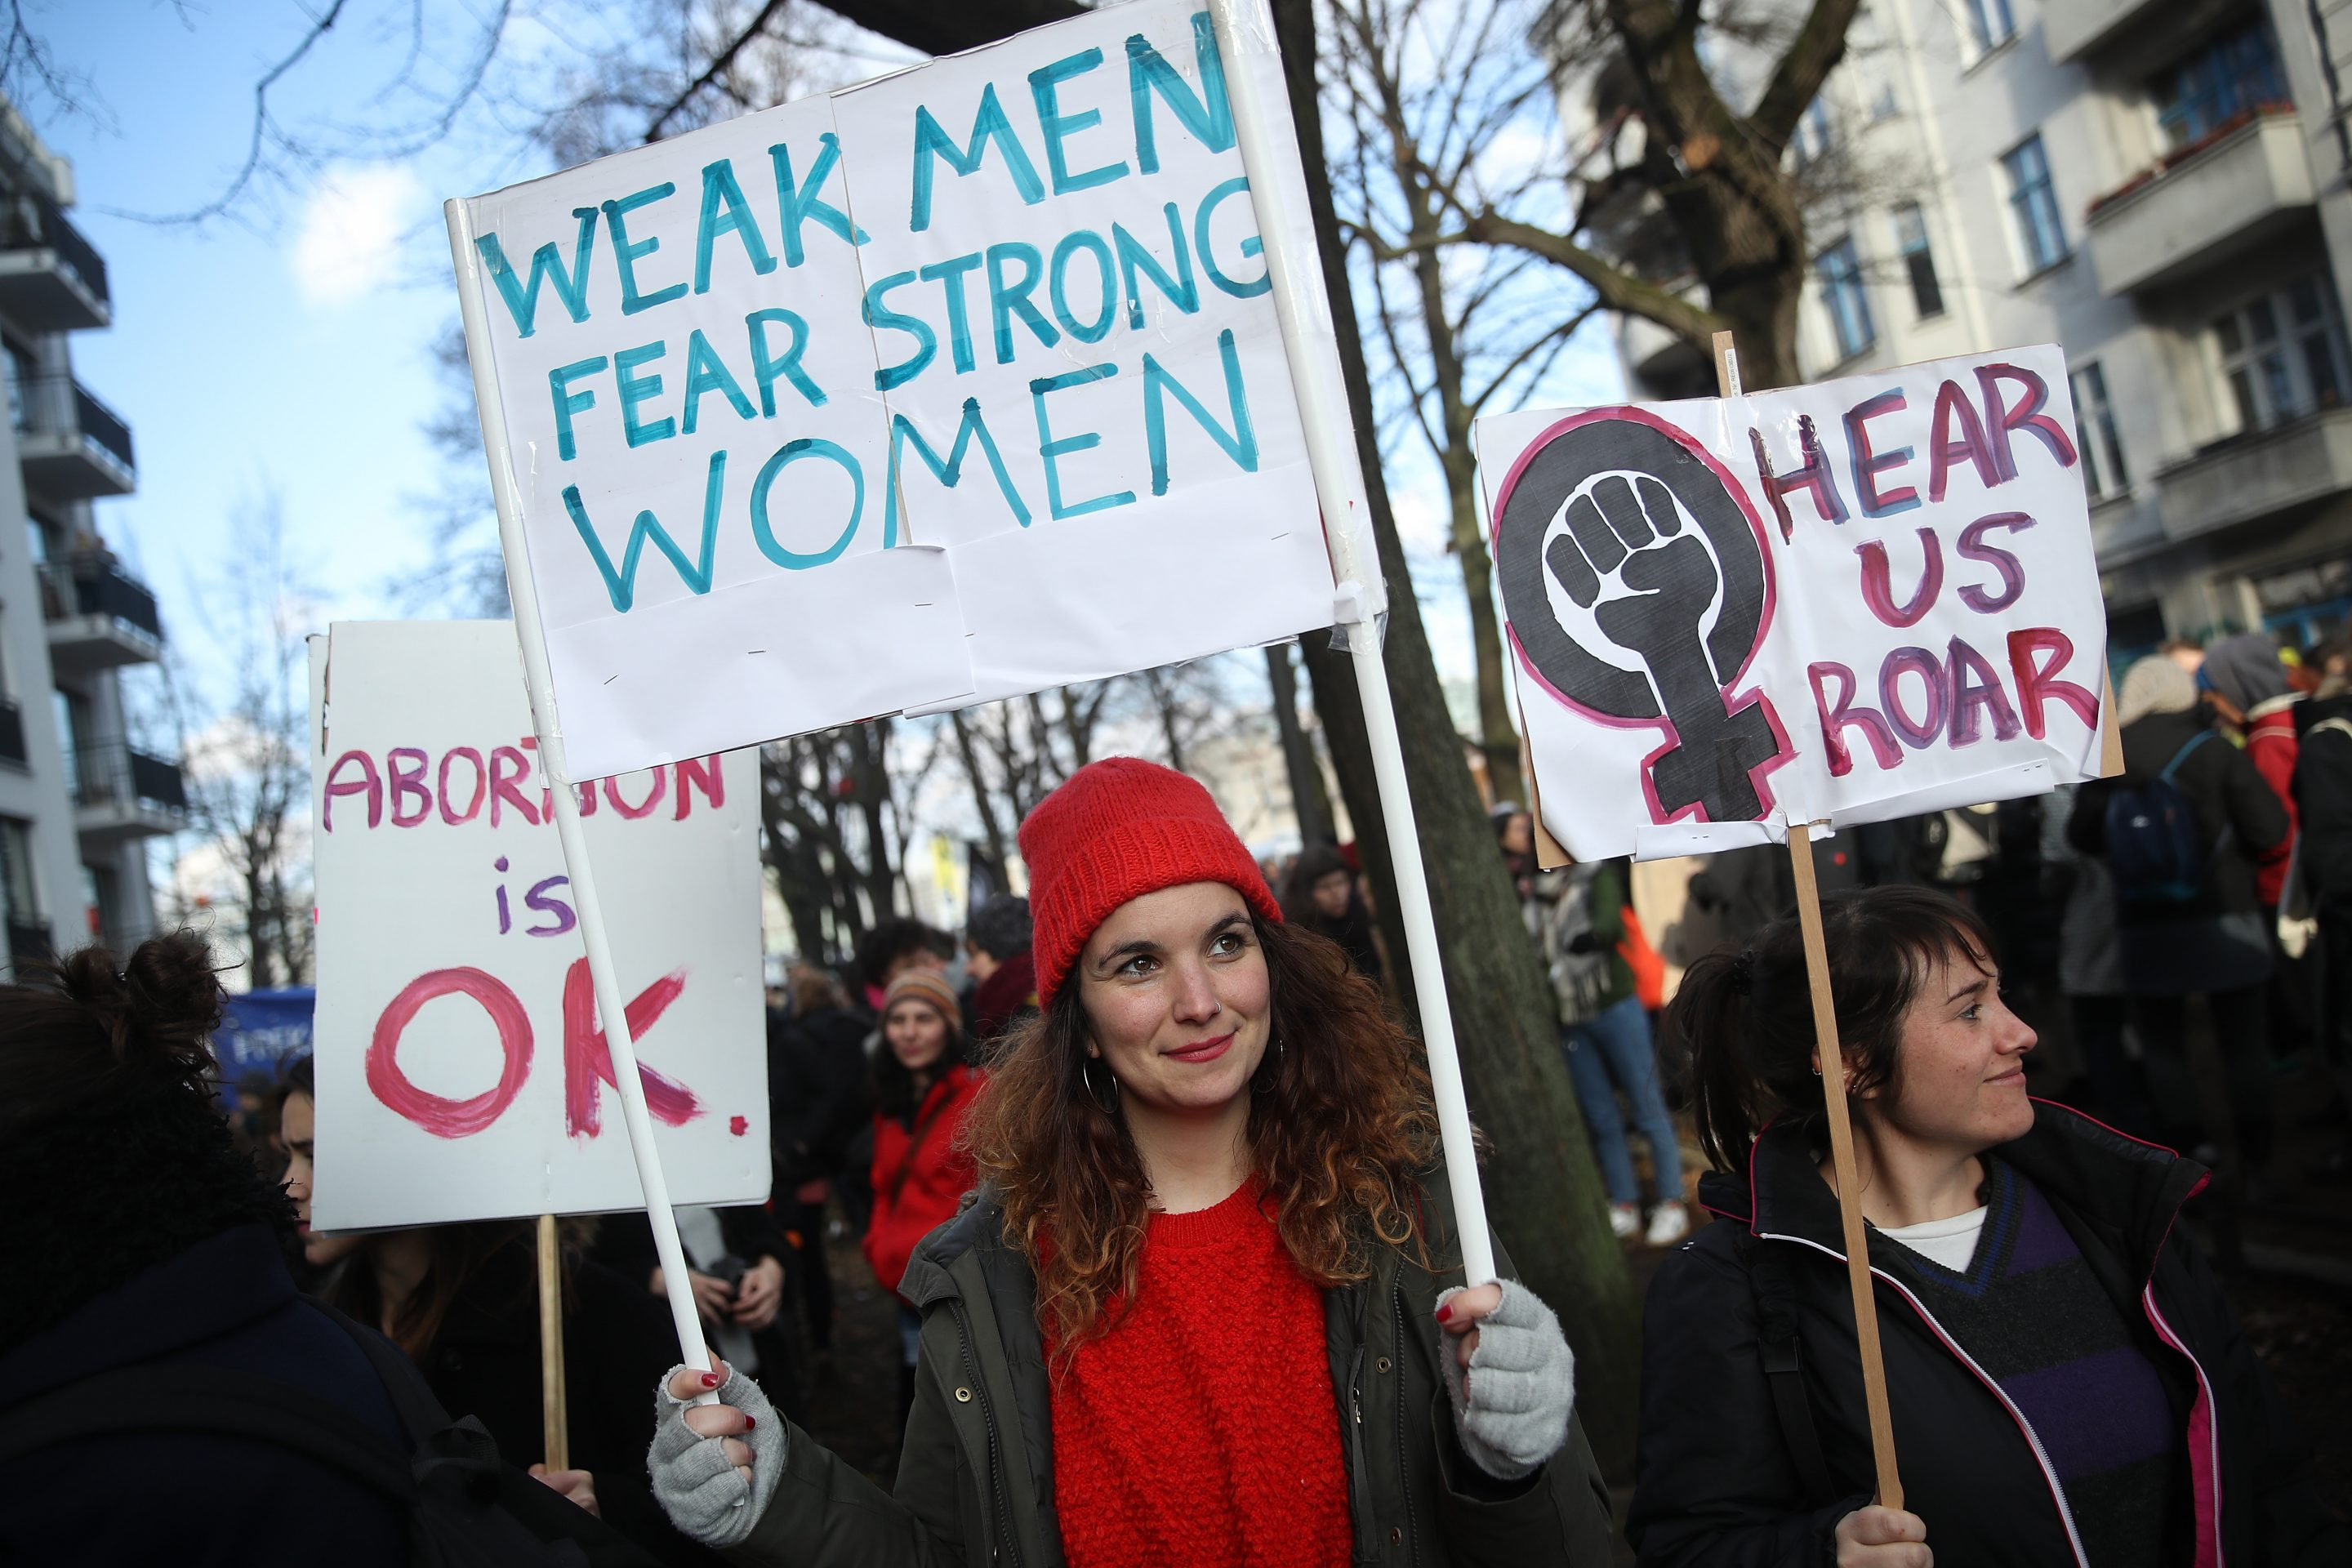 Women attend the beginning of a march for women's rights at Schlesisches Tor on International Women's Day on March 8, 2018 in Berlin, Germany.